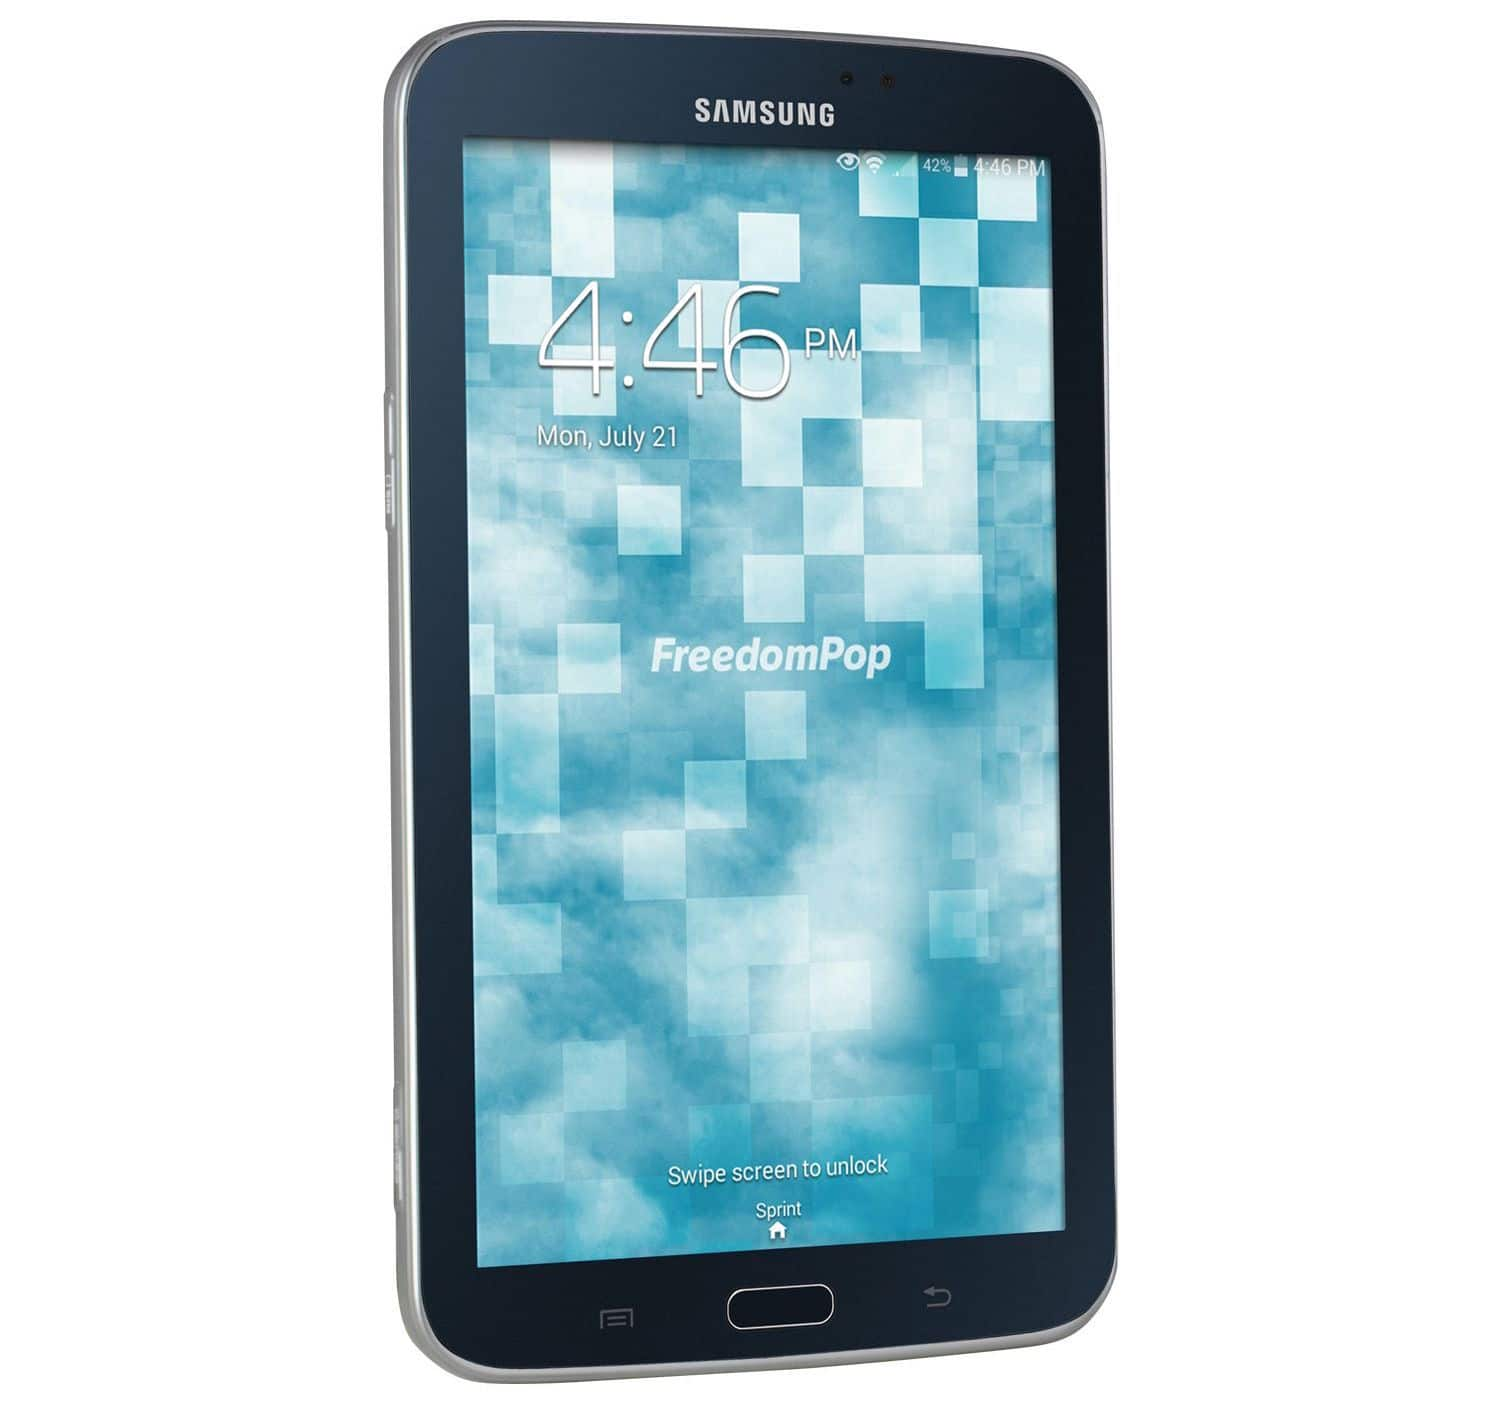 "8GB Samsung Galaxy Tab 3 7"" WiFi 4G Android 4.2 Tablet (Refurbished)  $55 + Free Shipping"